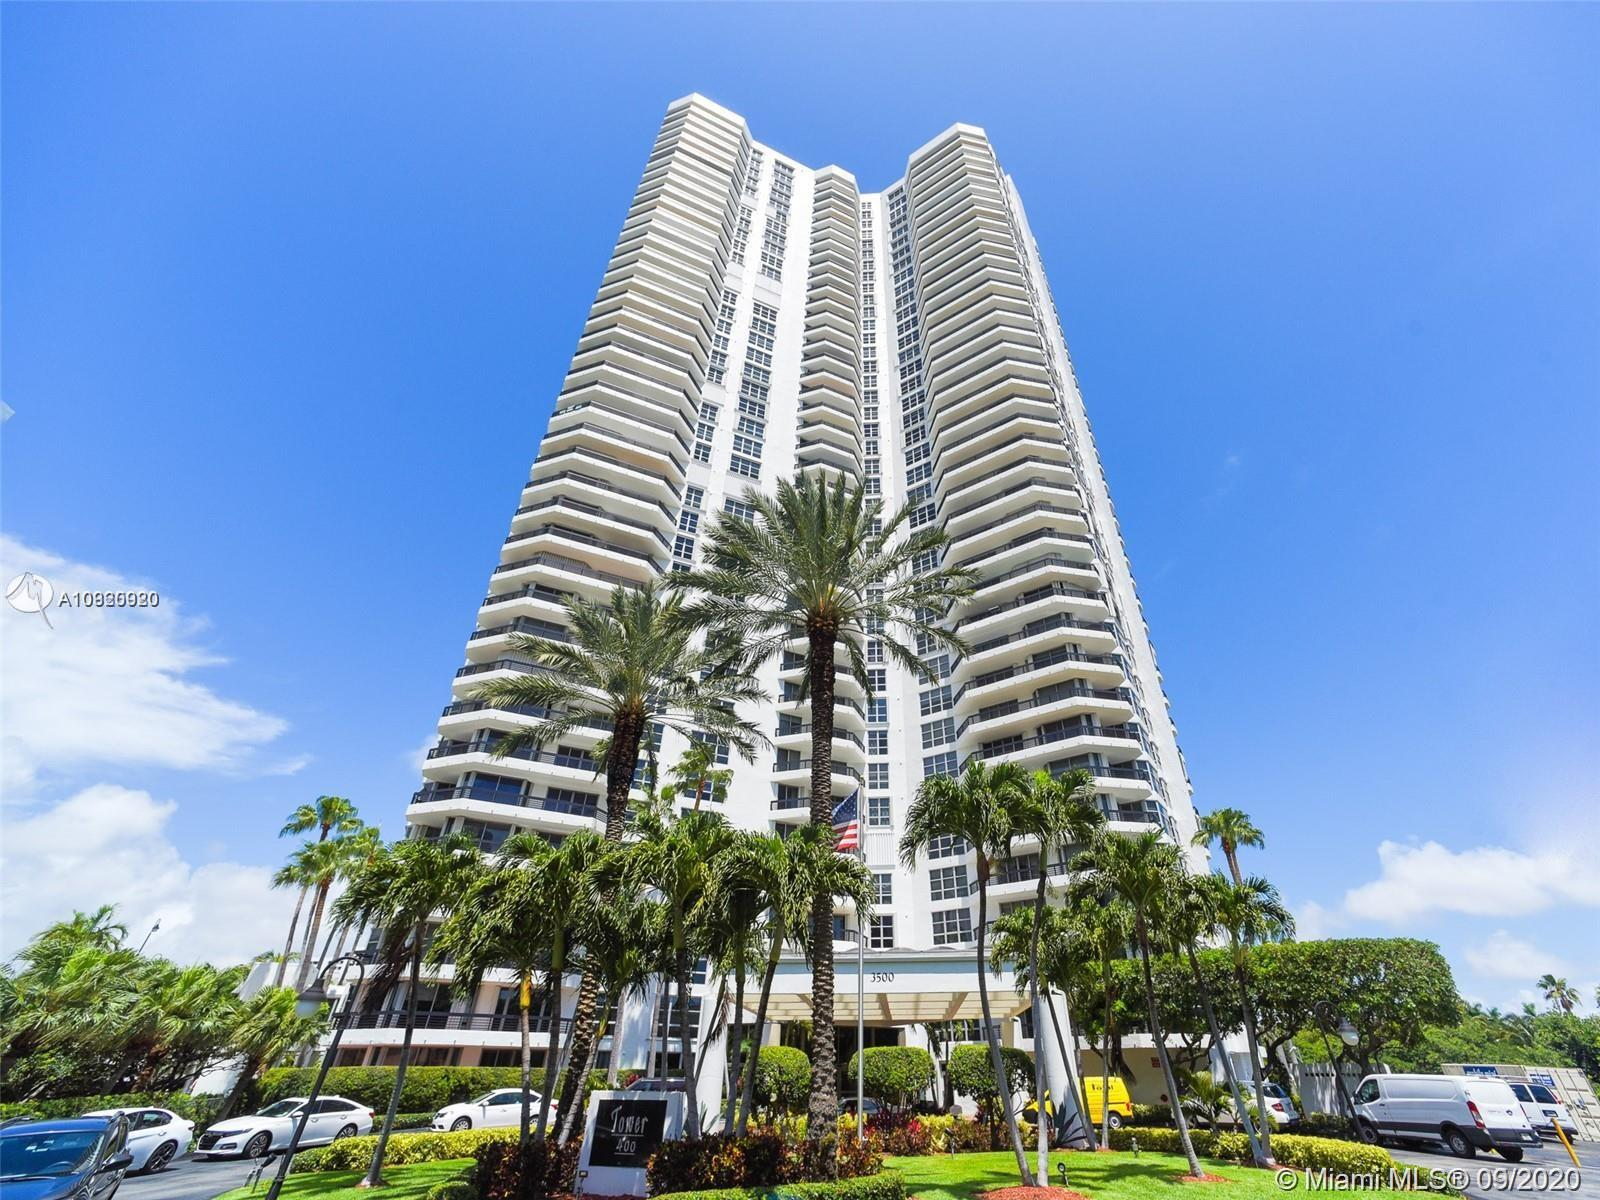 Mystic Pointe Tower 400 #2807 - 3500 Mystic Pointe Dr #2807, Aventura, FL 33180